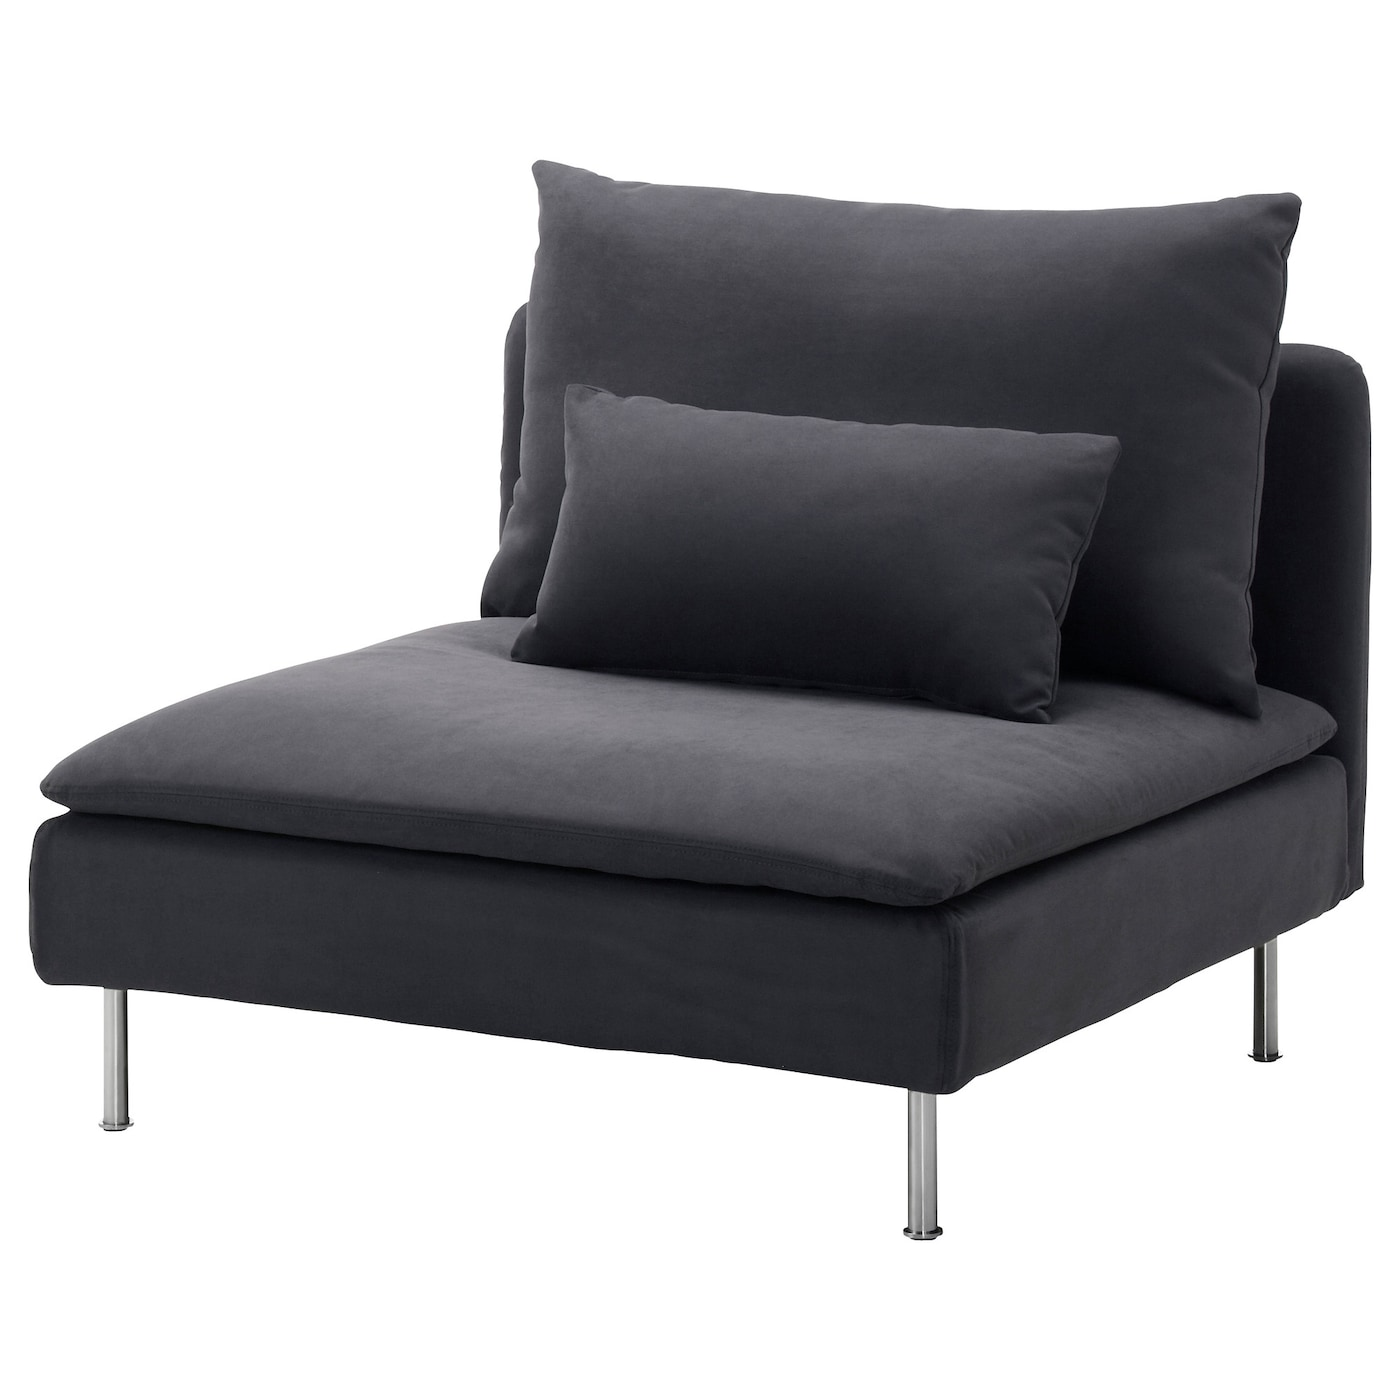 Schlafsessel design  SÖDERHAMN One-seat section Samsta dark grey - IKEA